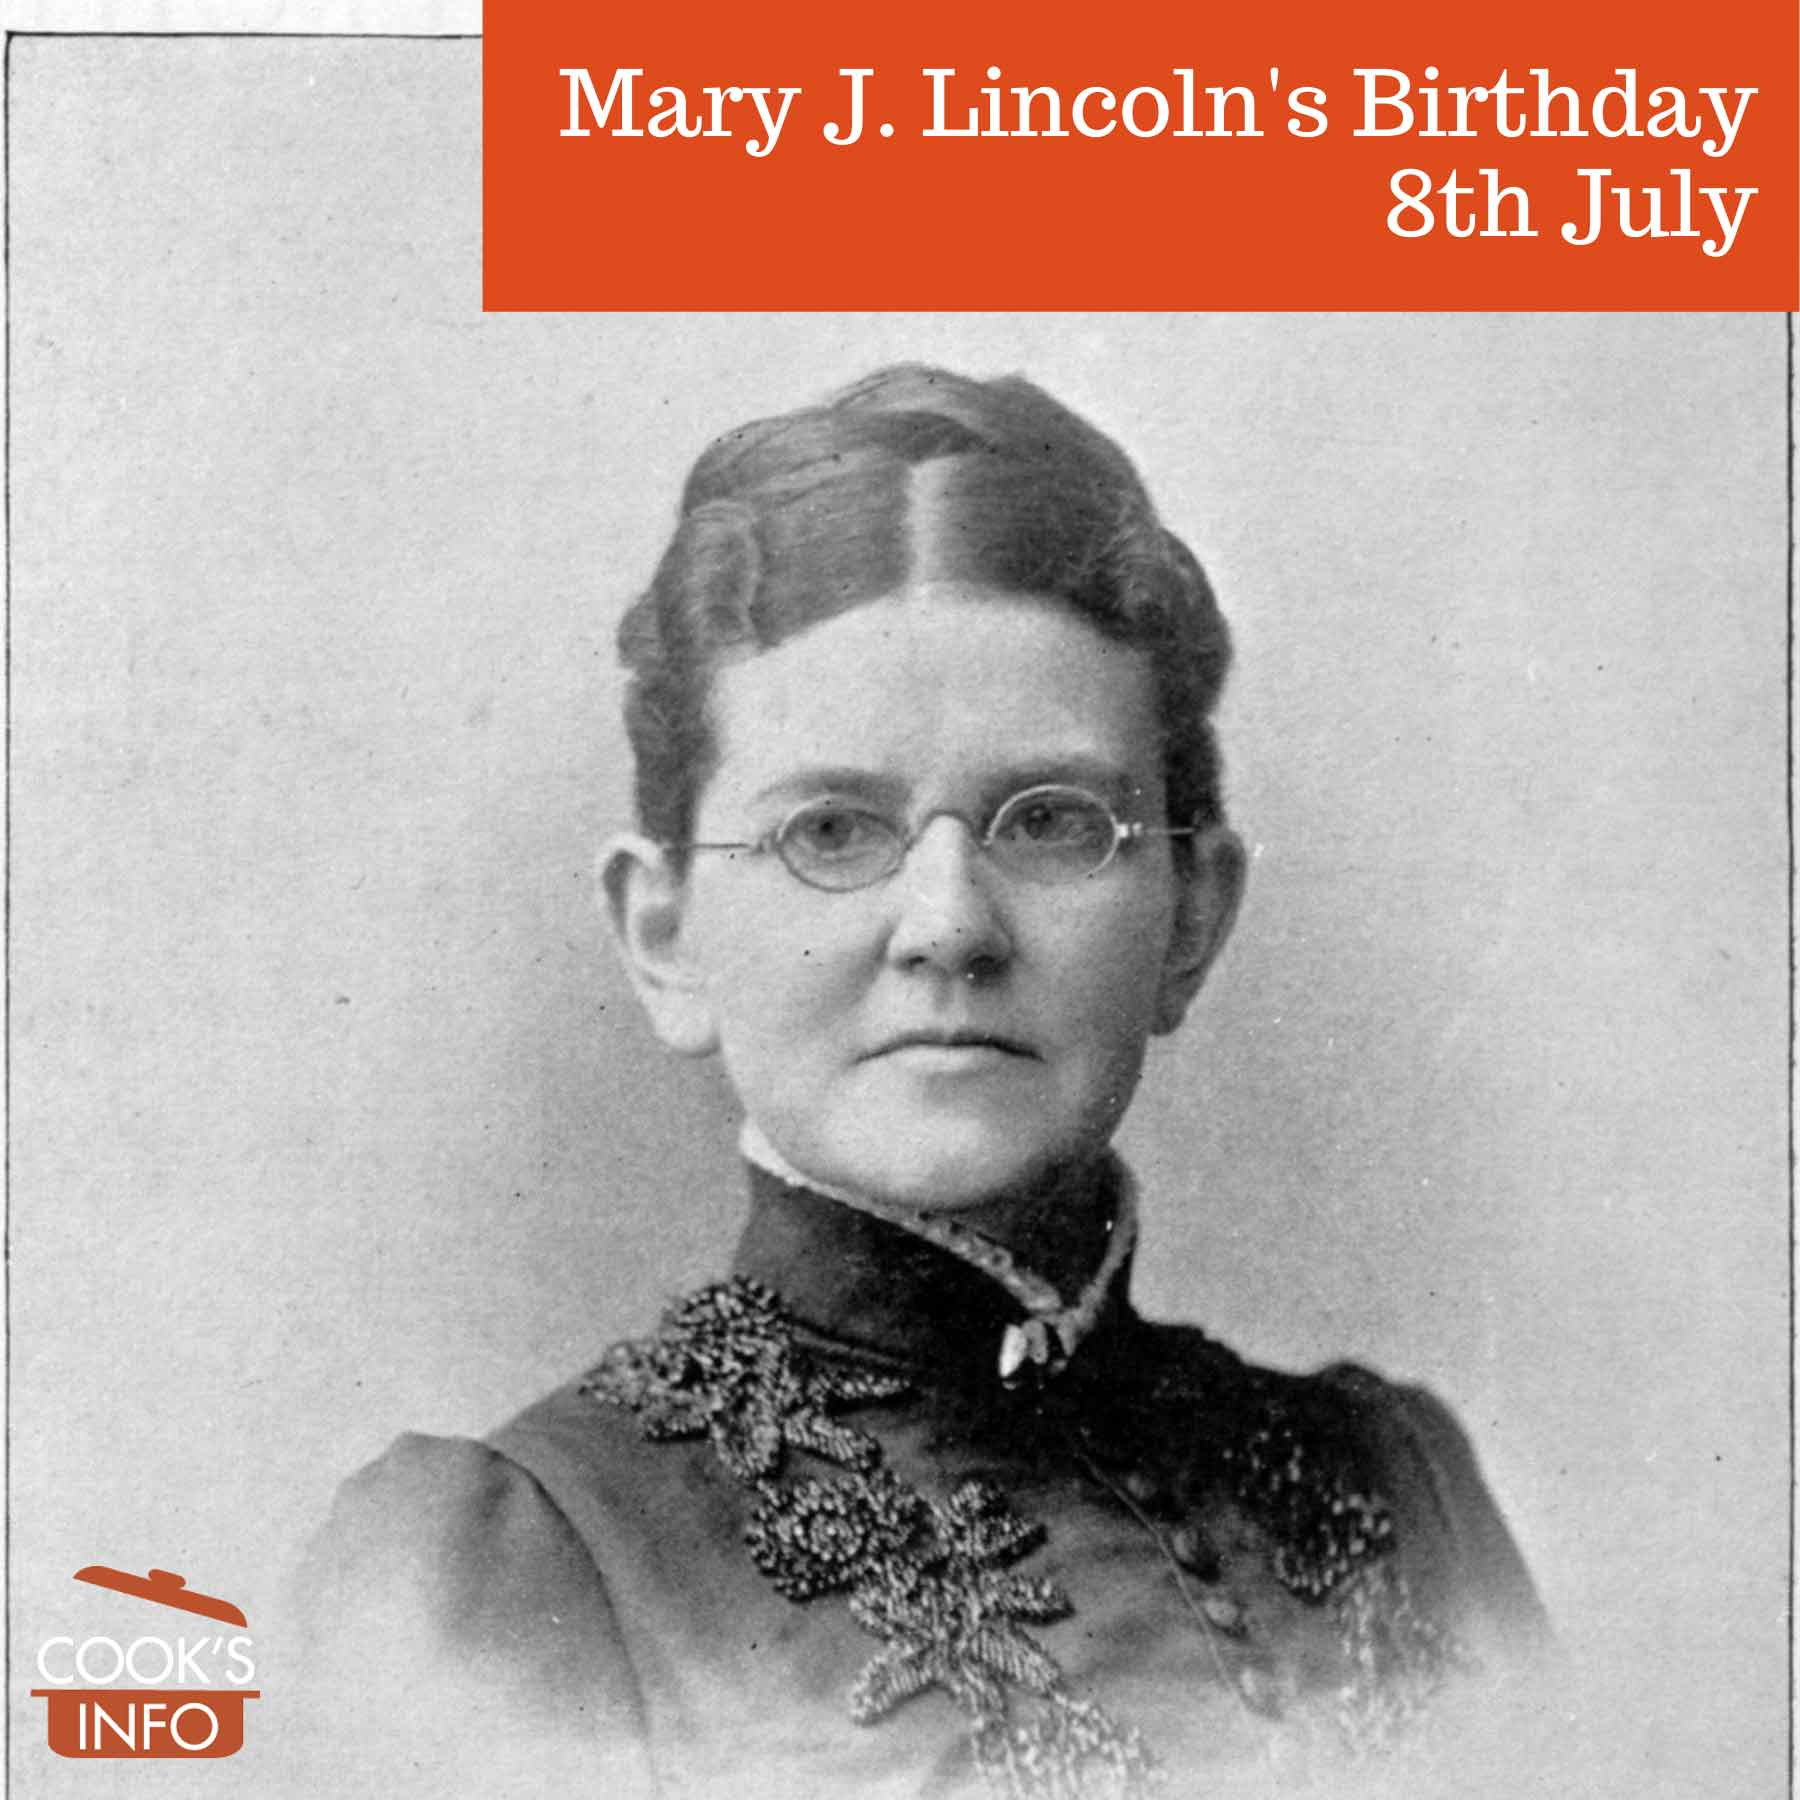 Mary J. Lincoln